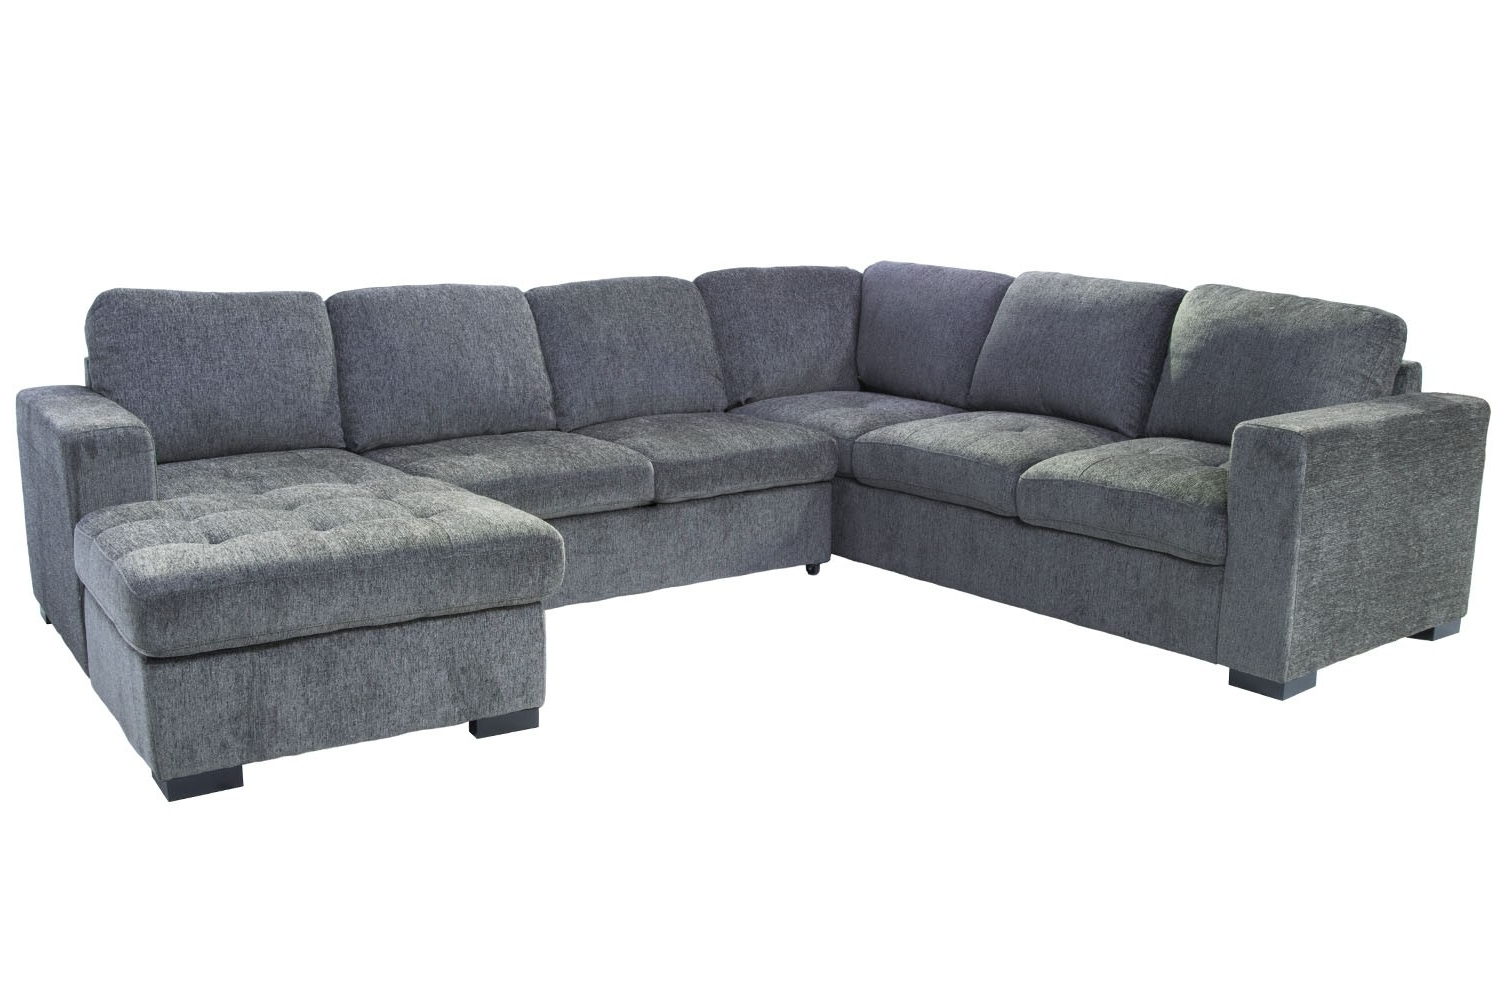 Mor Furniture For Less Throughout Well Known Reclining Sofas With Chaise (View 8 of 15)